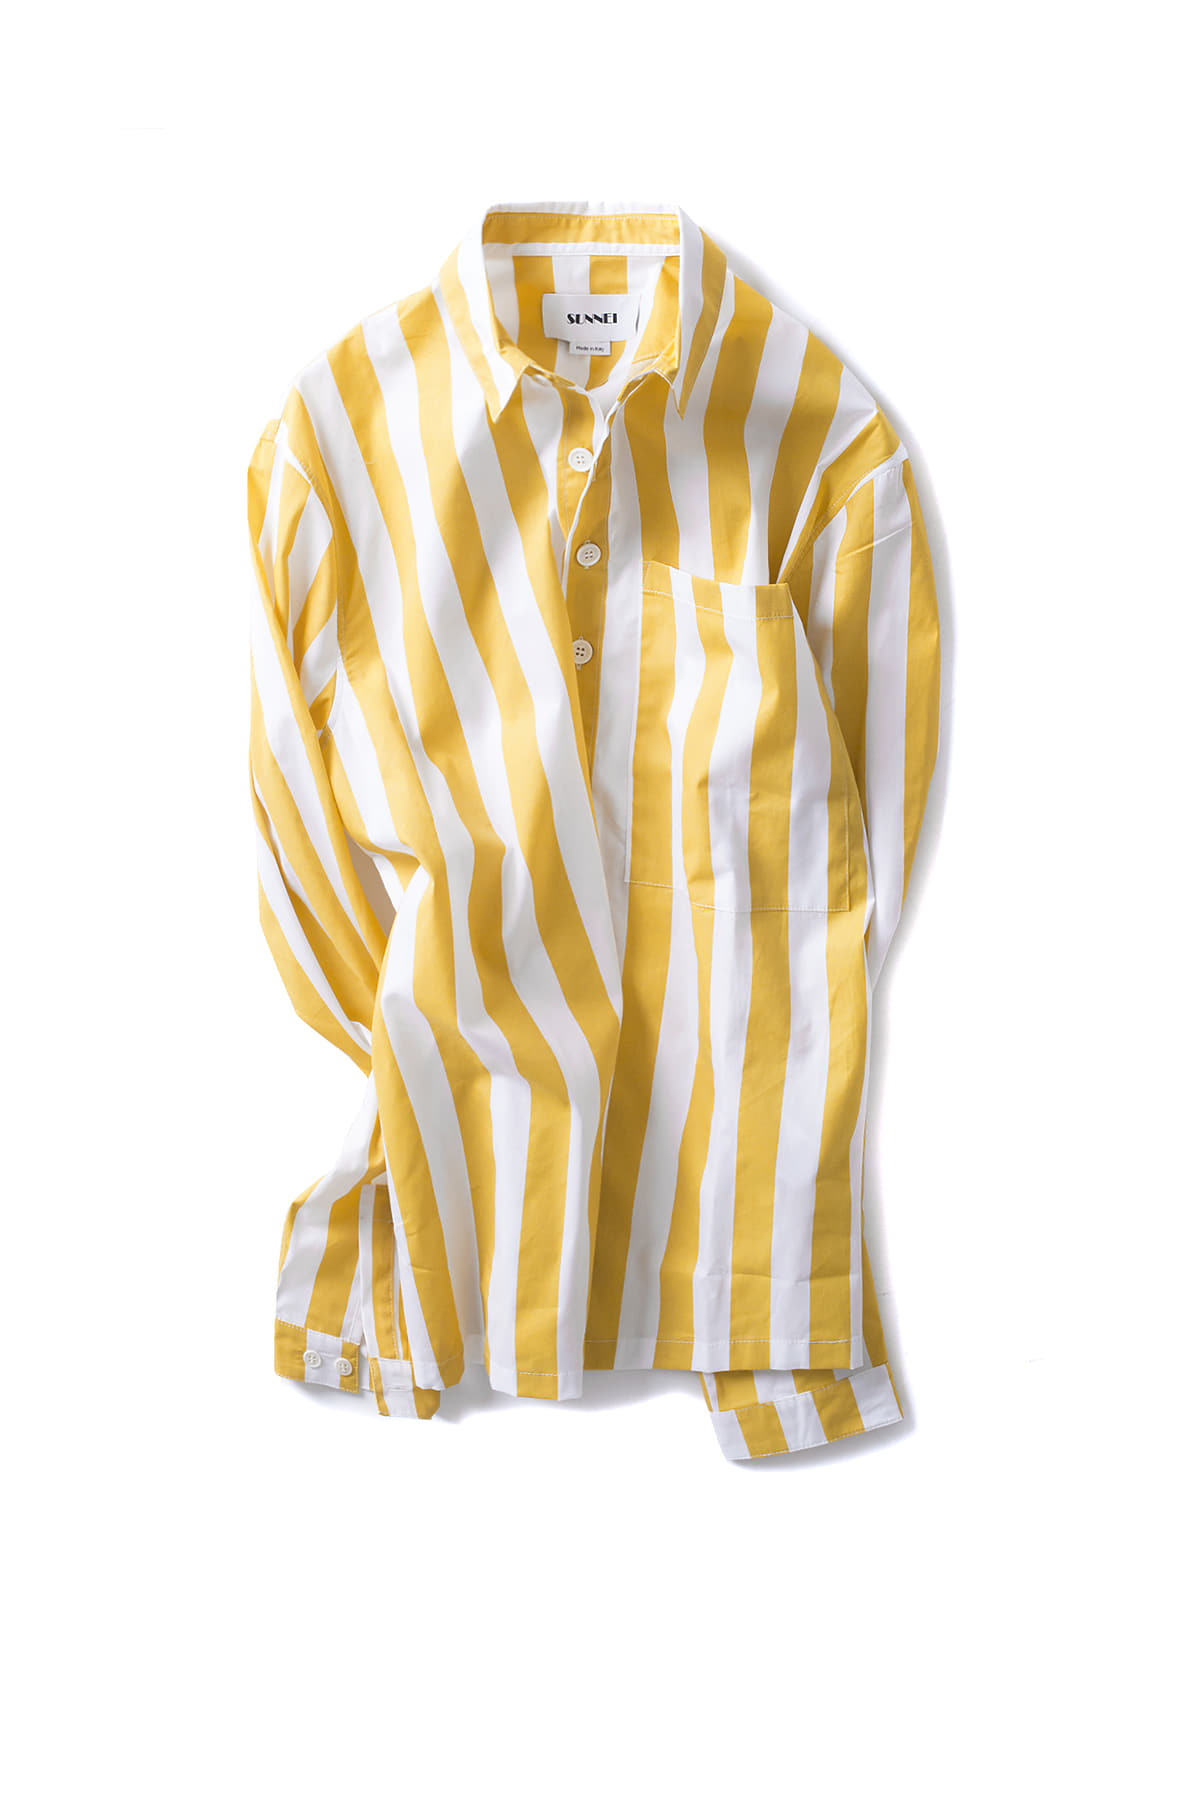 SUNNEI : Classic Shirt W Pocket (Mango Stripe)